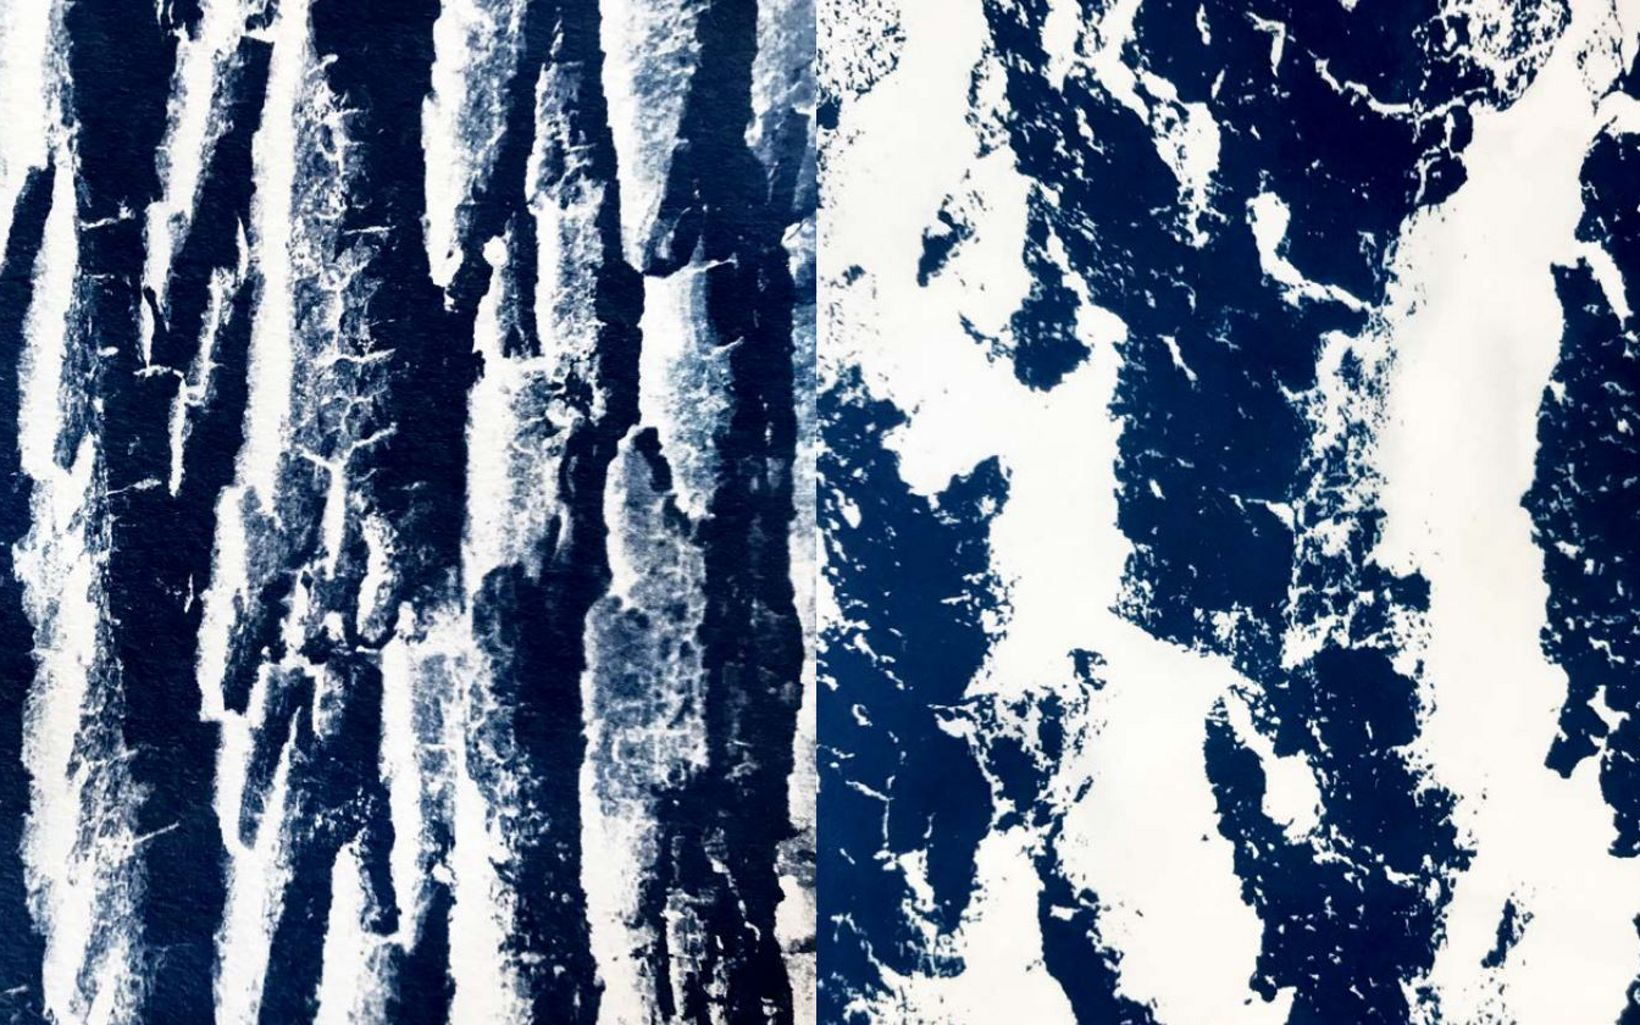 Excerpts from Winter Visual Journal